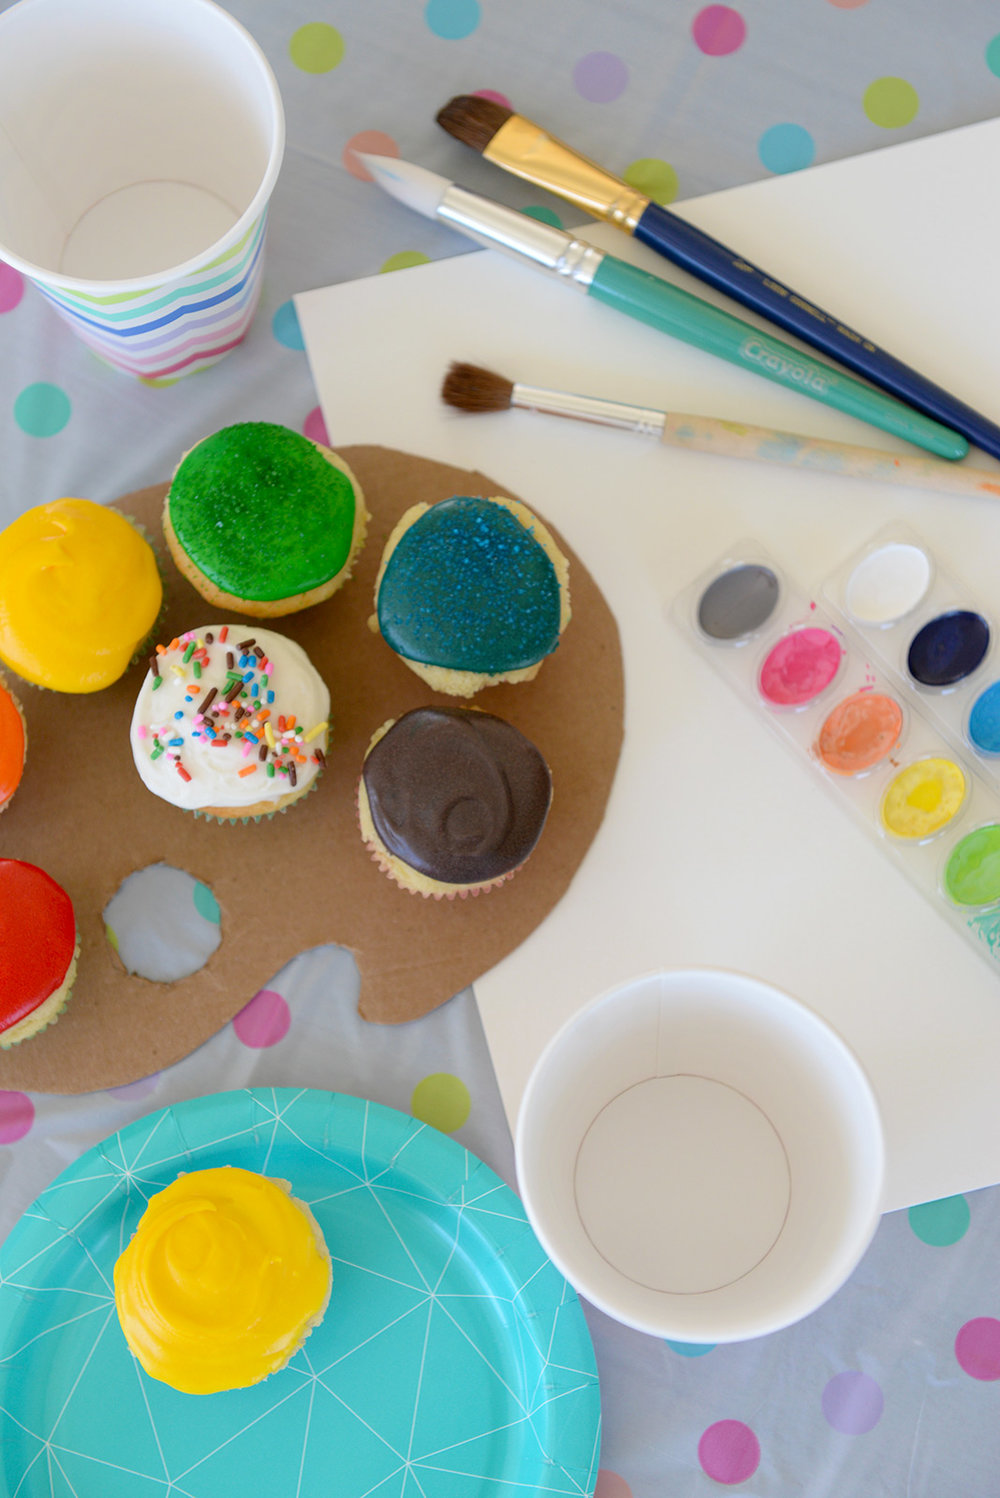 Get a TASTE for art with these cute paint palette cupcakes.